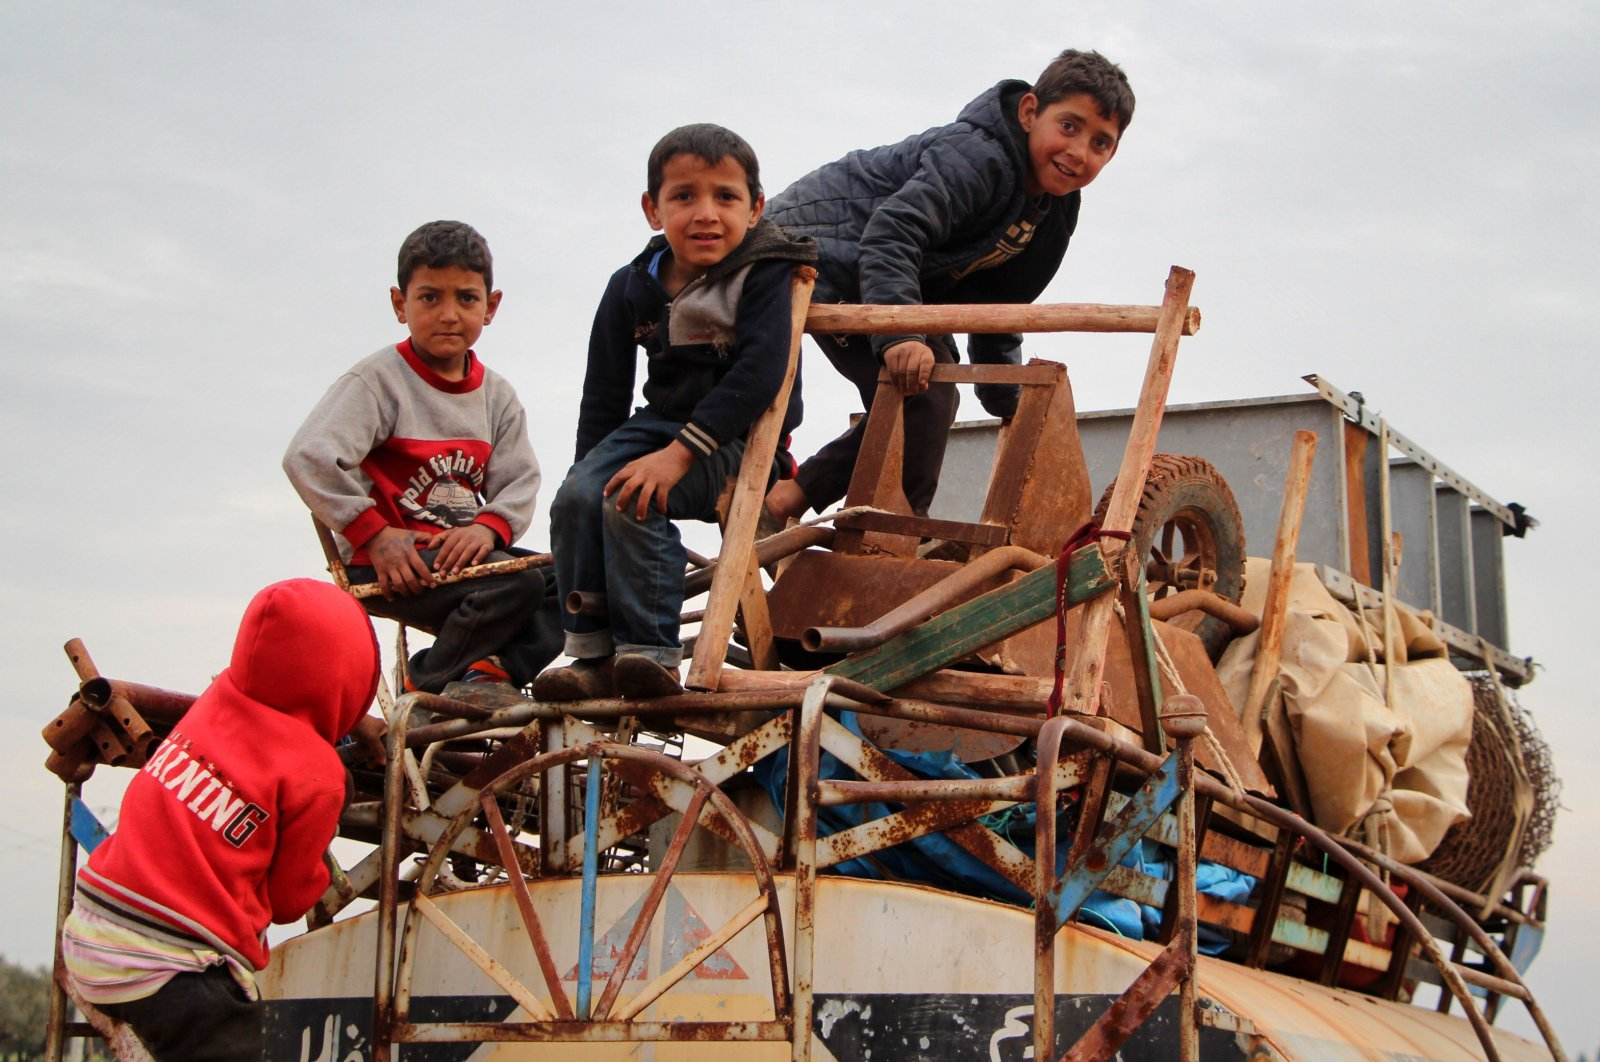 In this file photo taken on Feb. 15, 2020 children ride atop a water truck that is also loaded with furniture in the countryside of the village of Saharah, lying on the western edge of Syria's northern Aleppo province by Idlib province (AFP Photo)